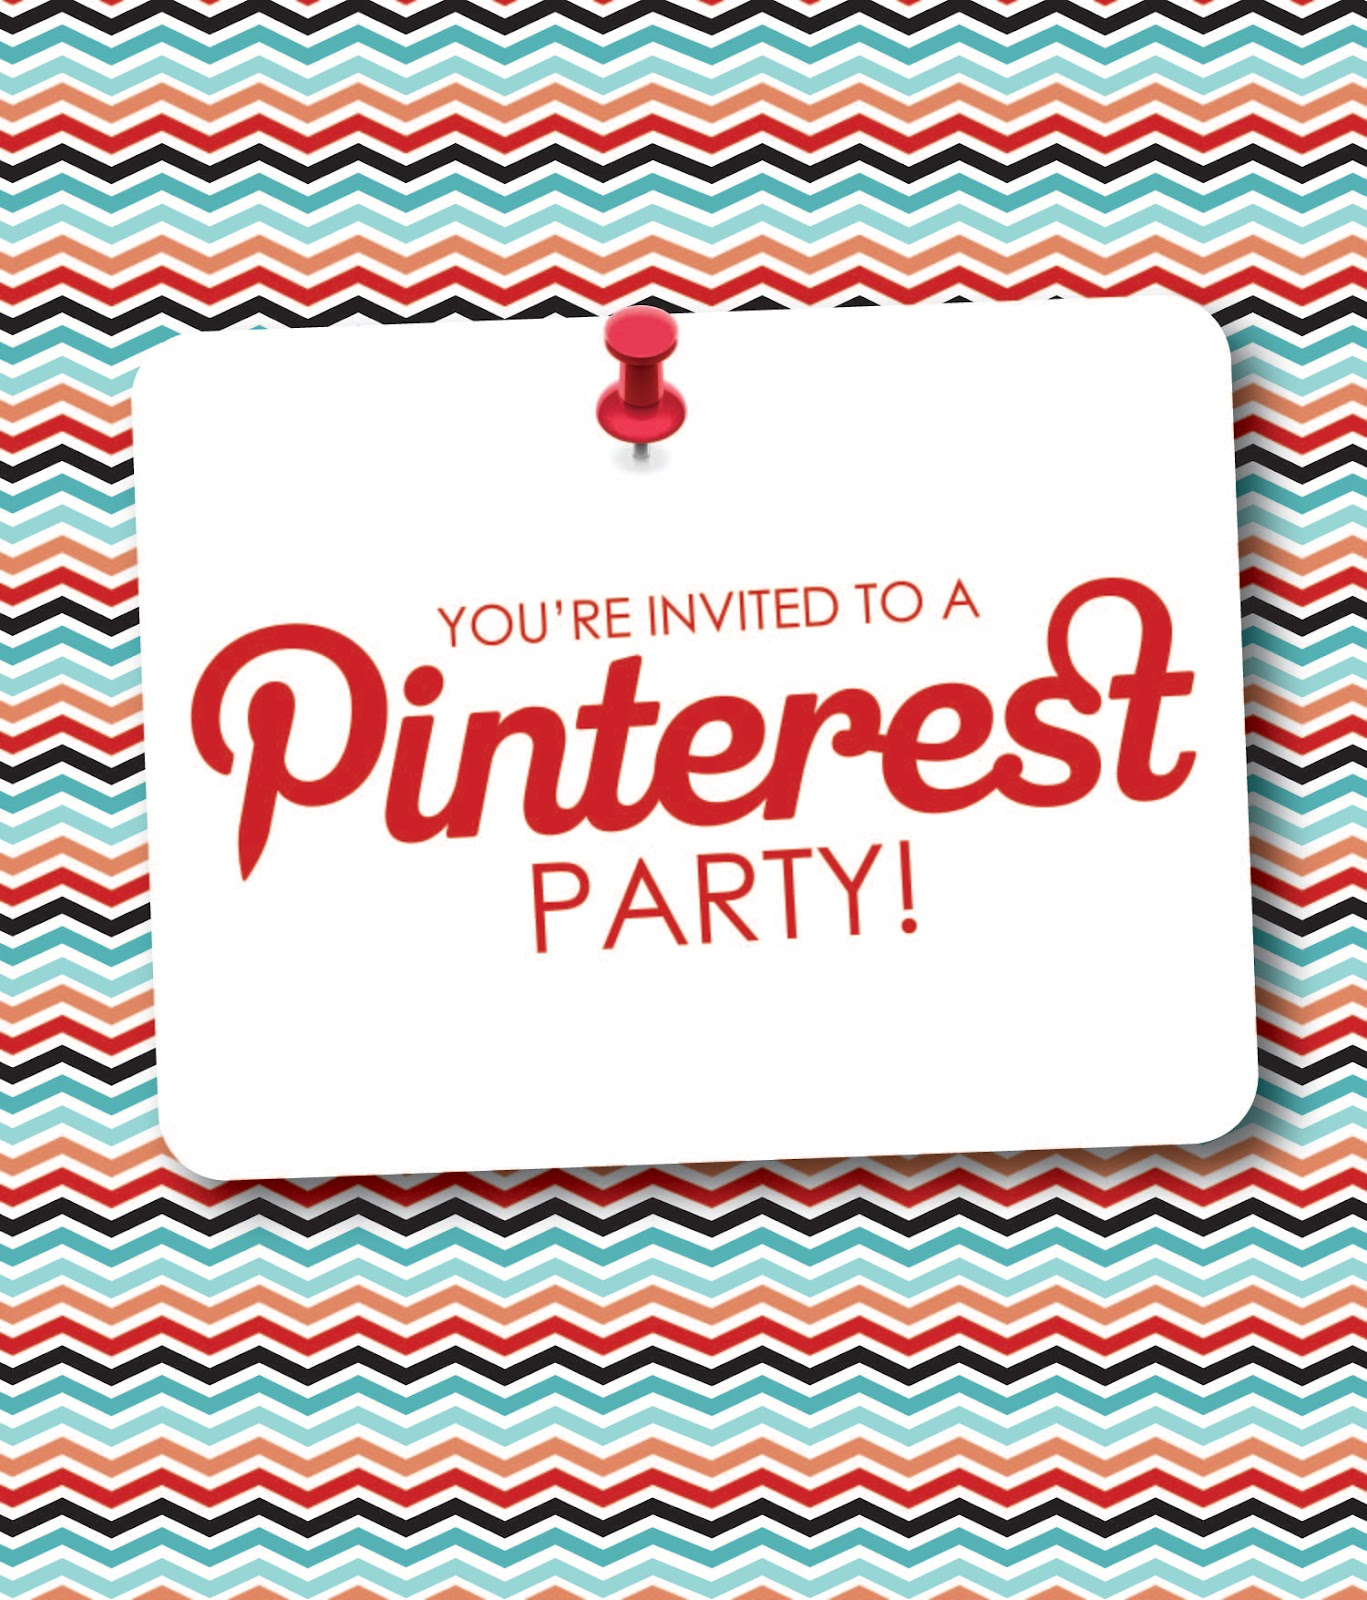 Pinterest Invitation Ideas Pictures to Pin PinsDaddy – Party Invitation Pinterest